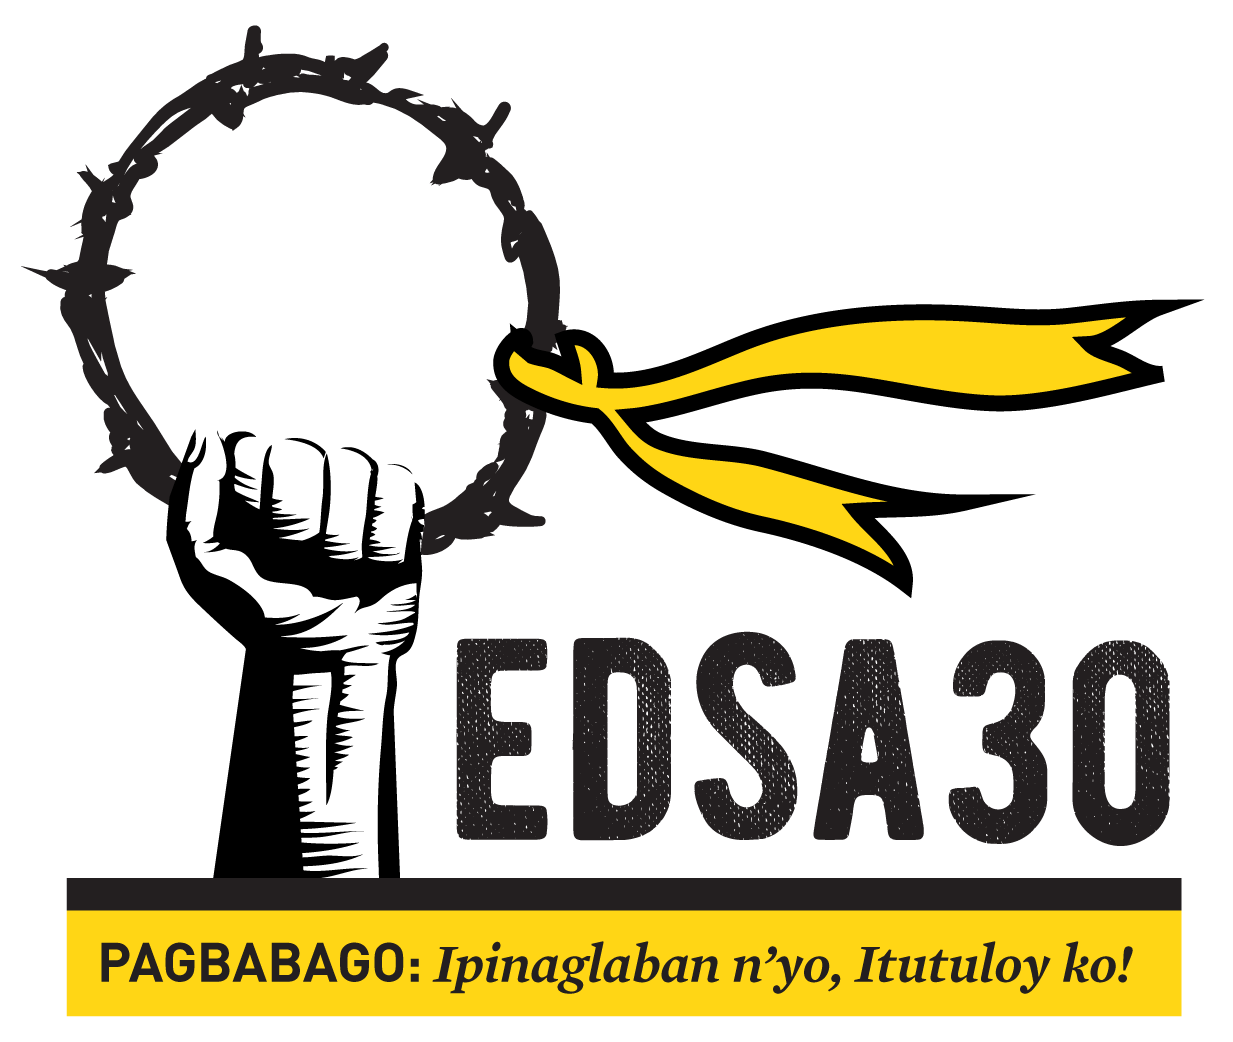 Appendix book clipart image library stock APPENDIX: A History of the Philippine Political Protest | Official ... image library stock